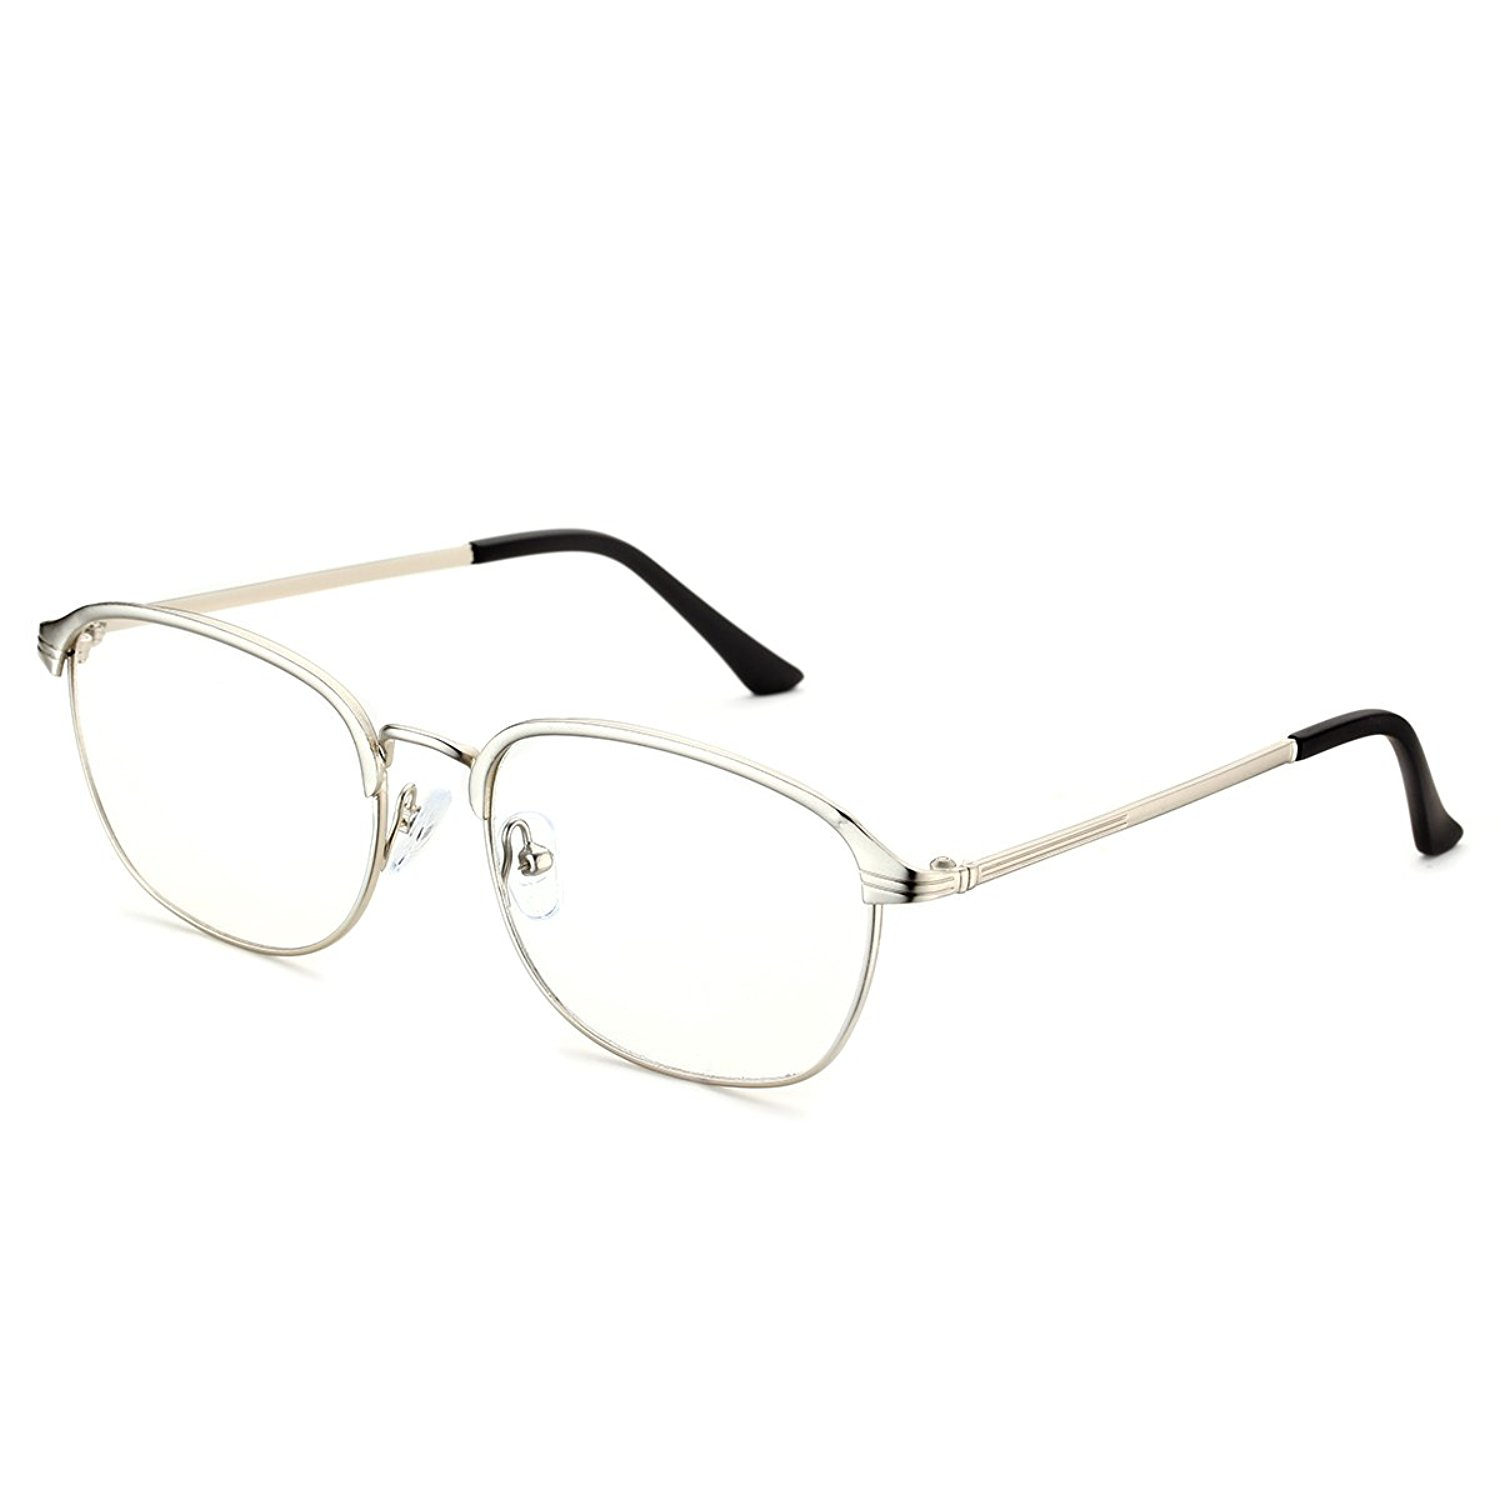 02486c4f644 Get Quotations · PenSee Optical Rectangular Metal Square Eye Glasses  Eyewear Frames